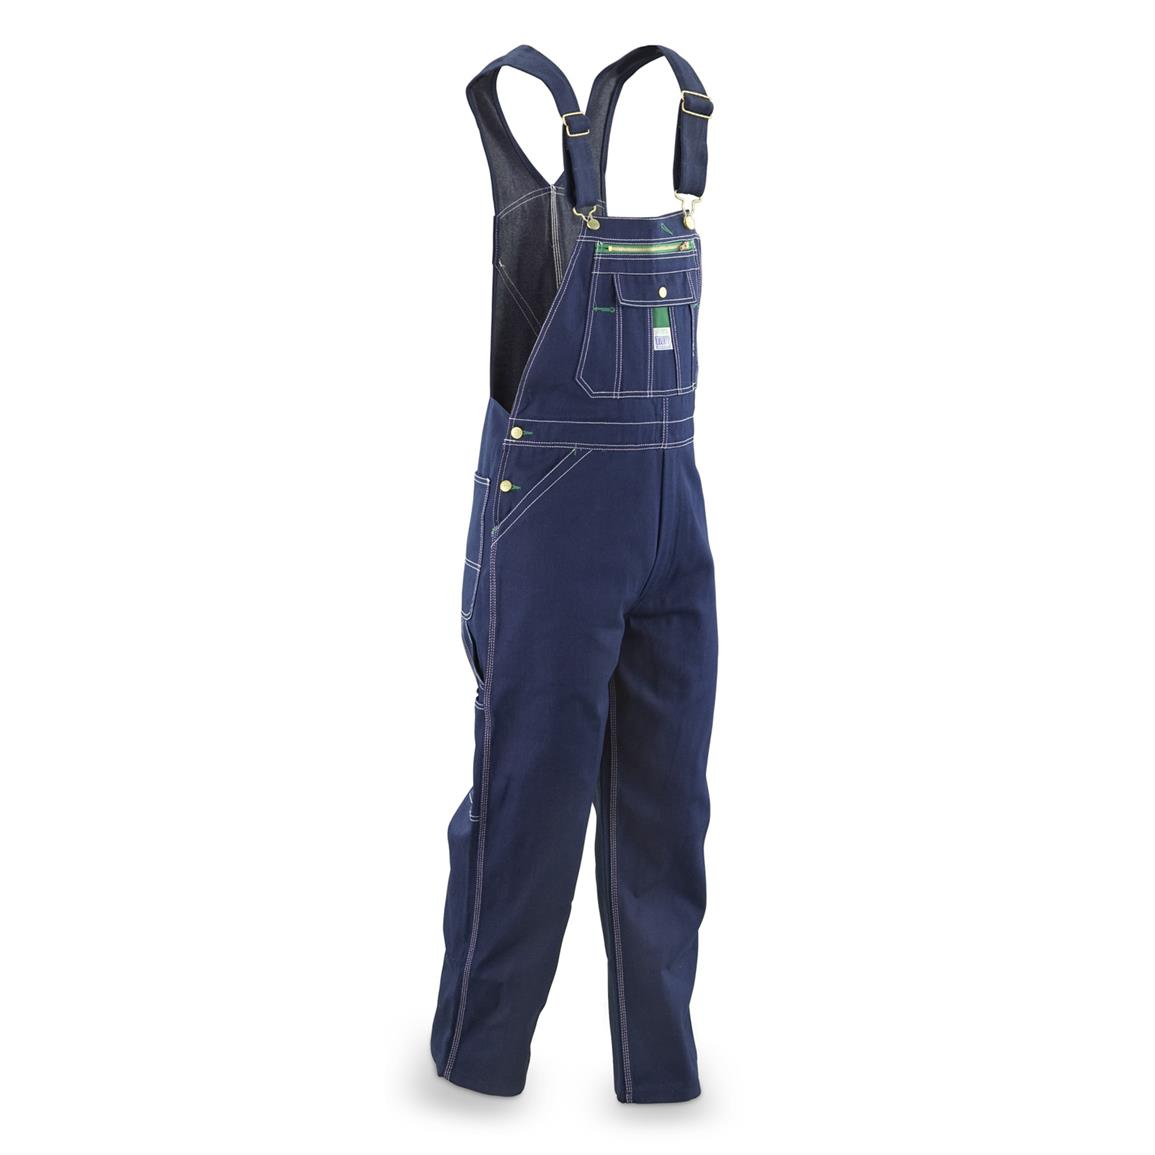 Liberty Men's Denim Bib Overalls, Slight Irregulars, Rigid Indigo